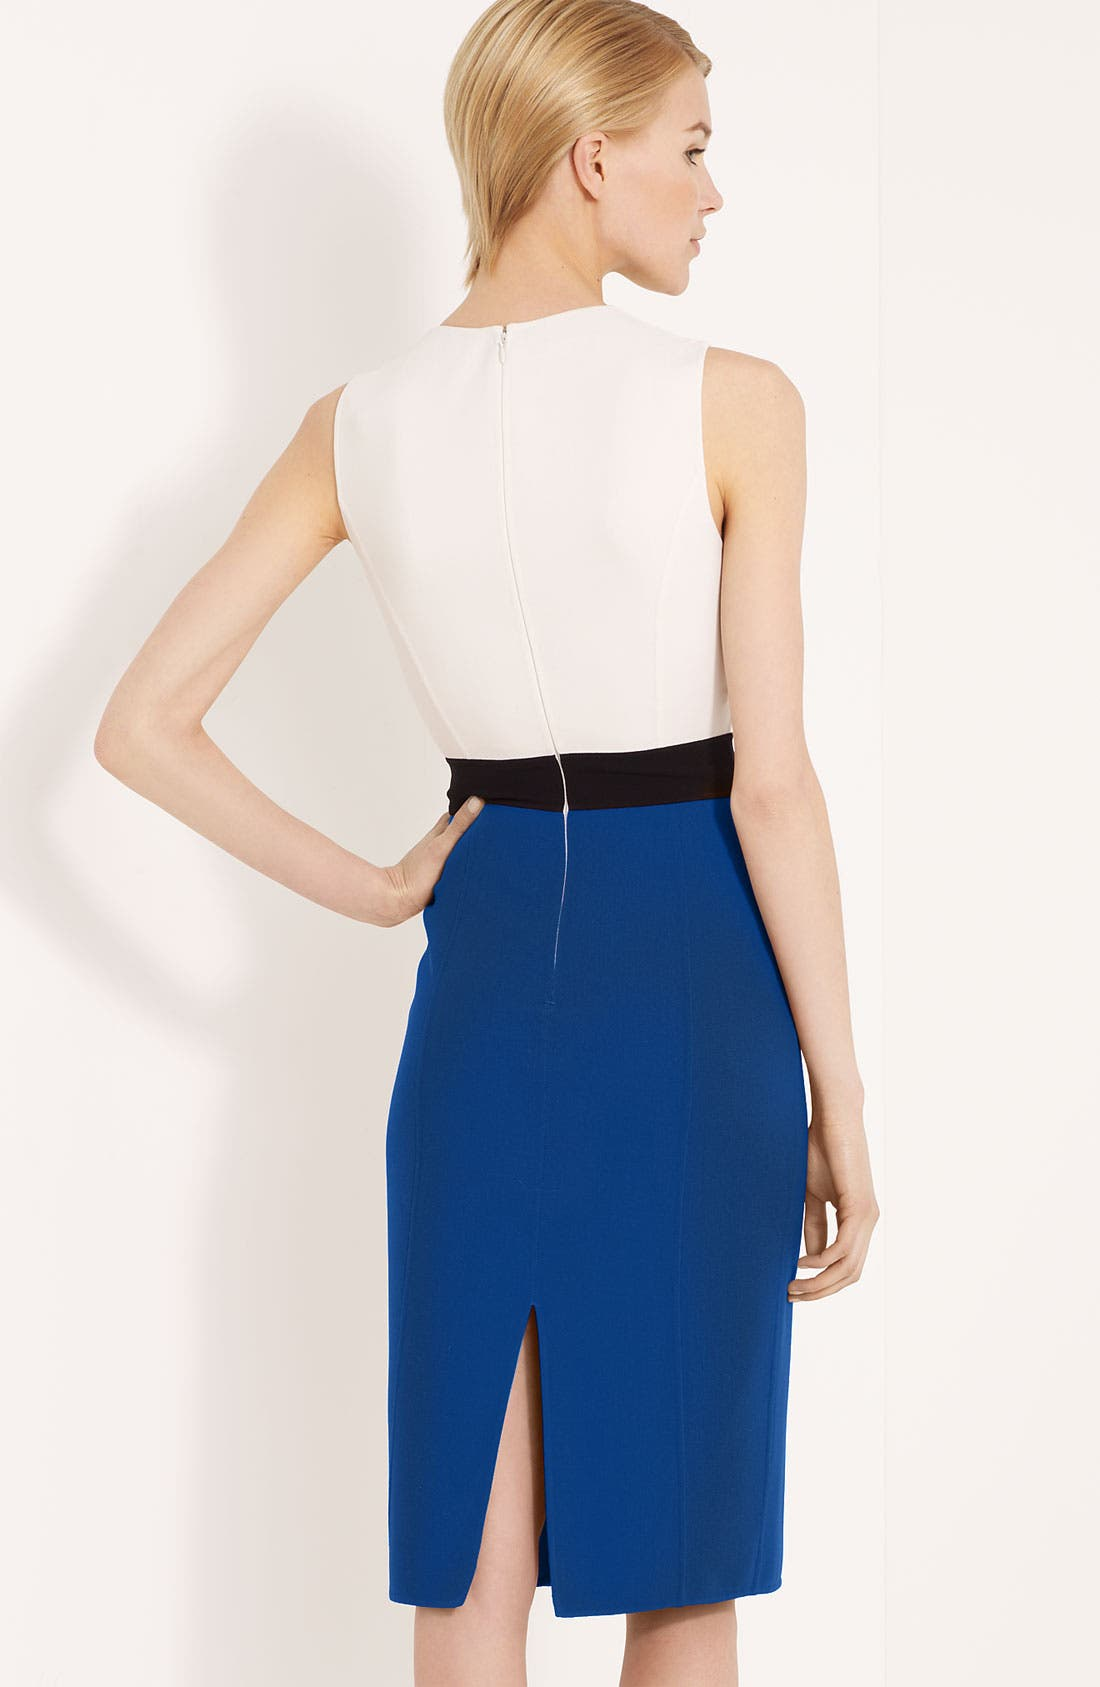 Alternate Image 2  - Michael Kors Colorblock Stretch Wool Crepe Dress